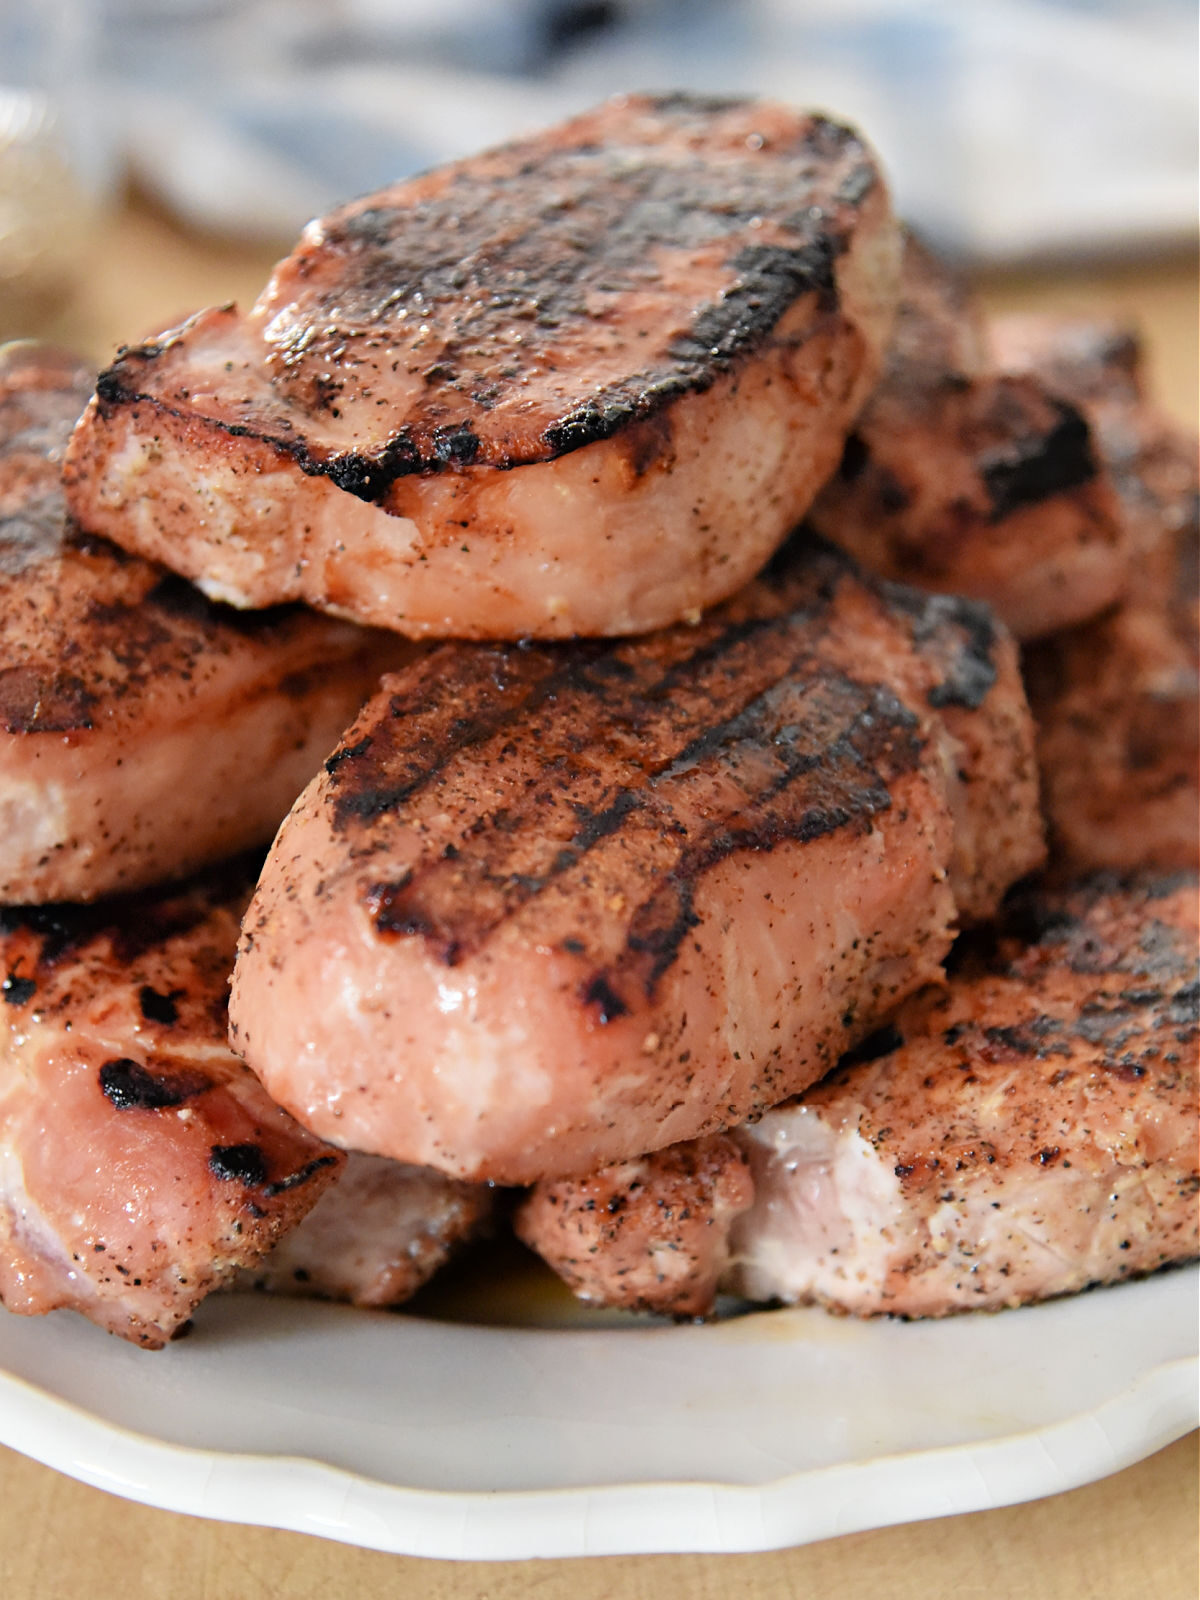 Platter topped with grilled pork chops.